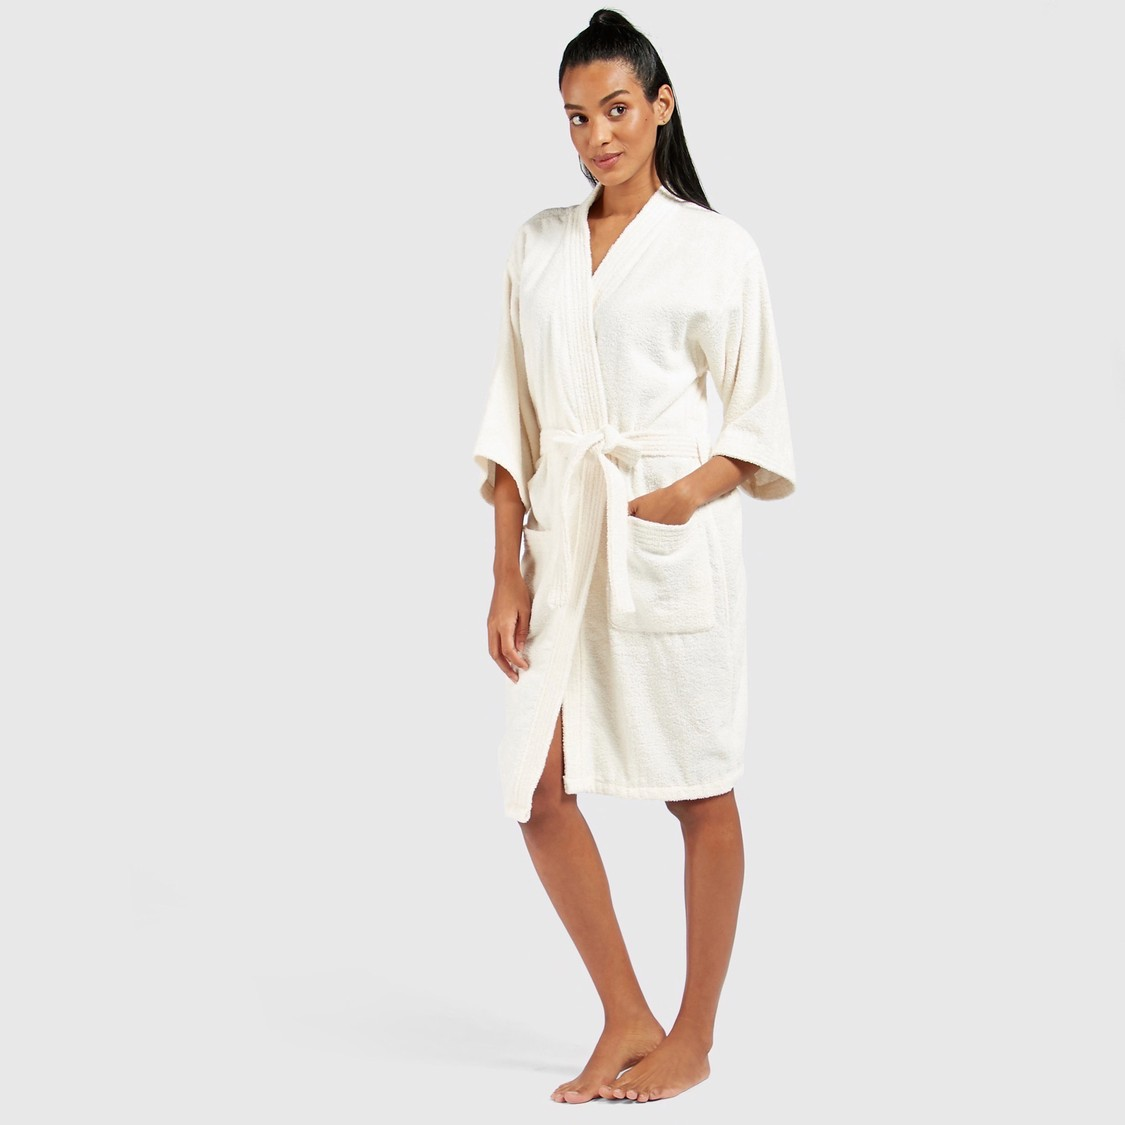 Textured Bathrobe with Pockets and Tie-Ups